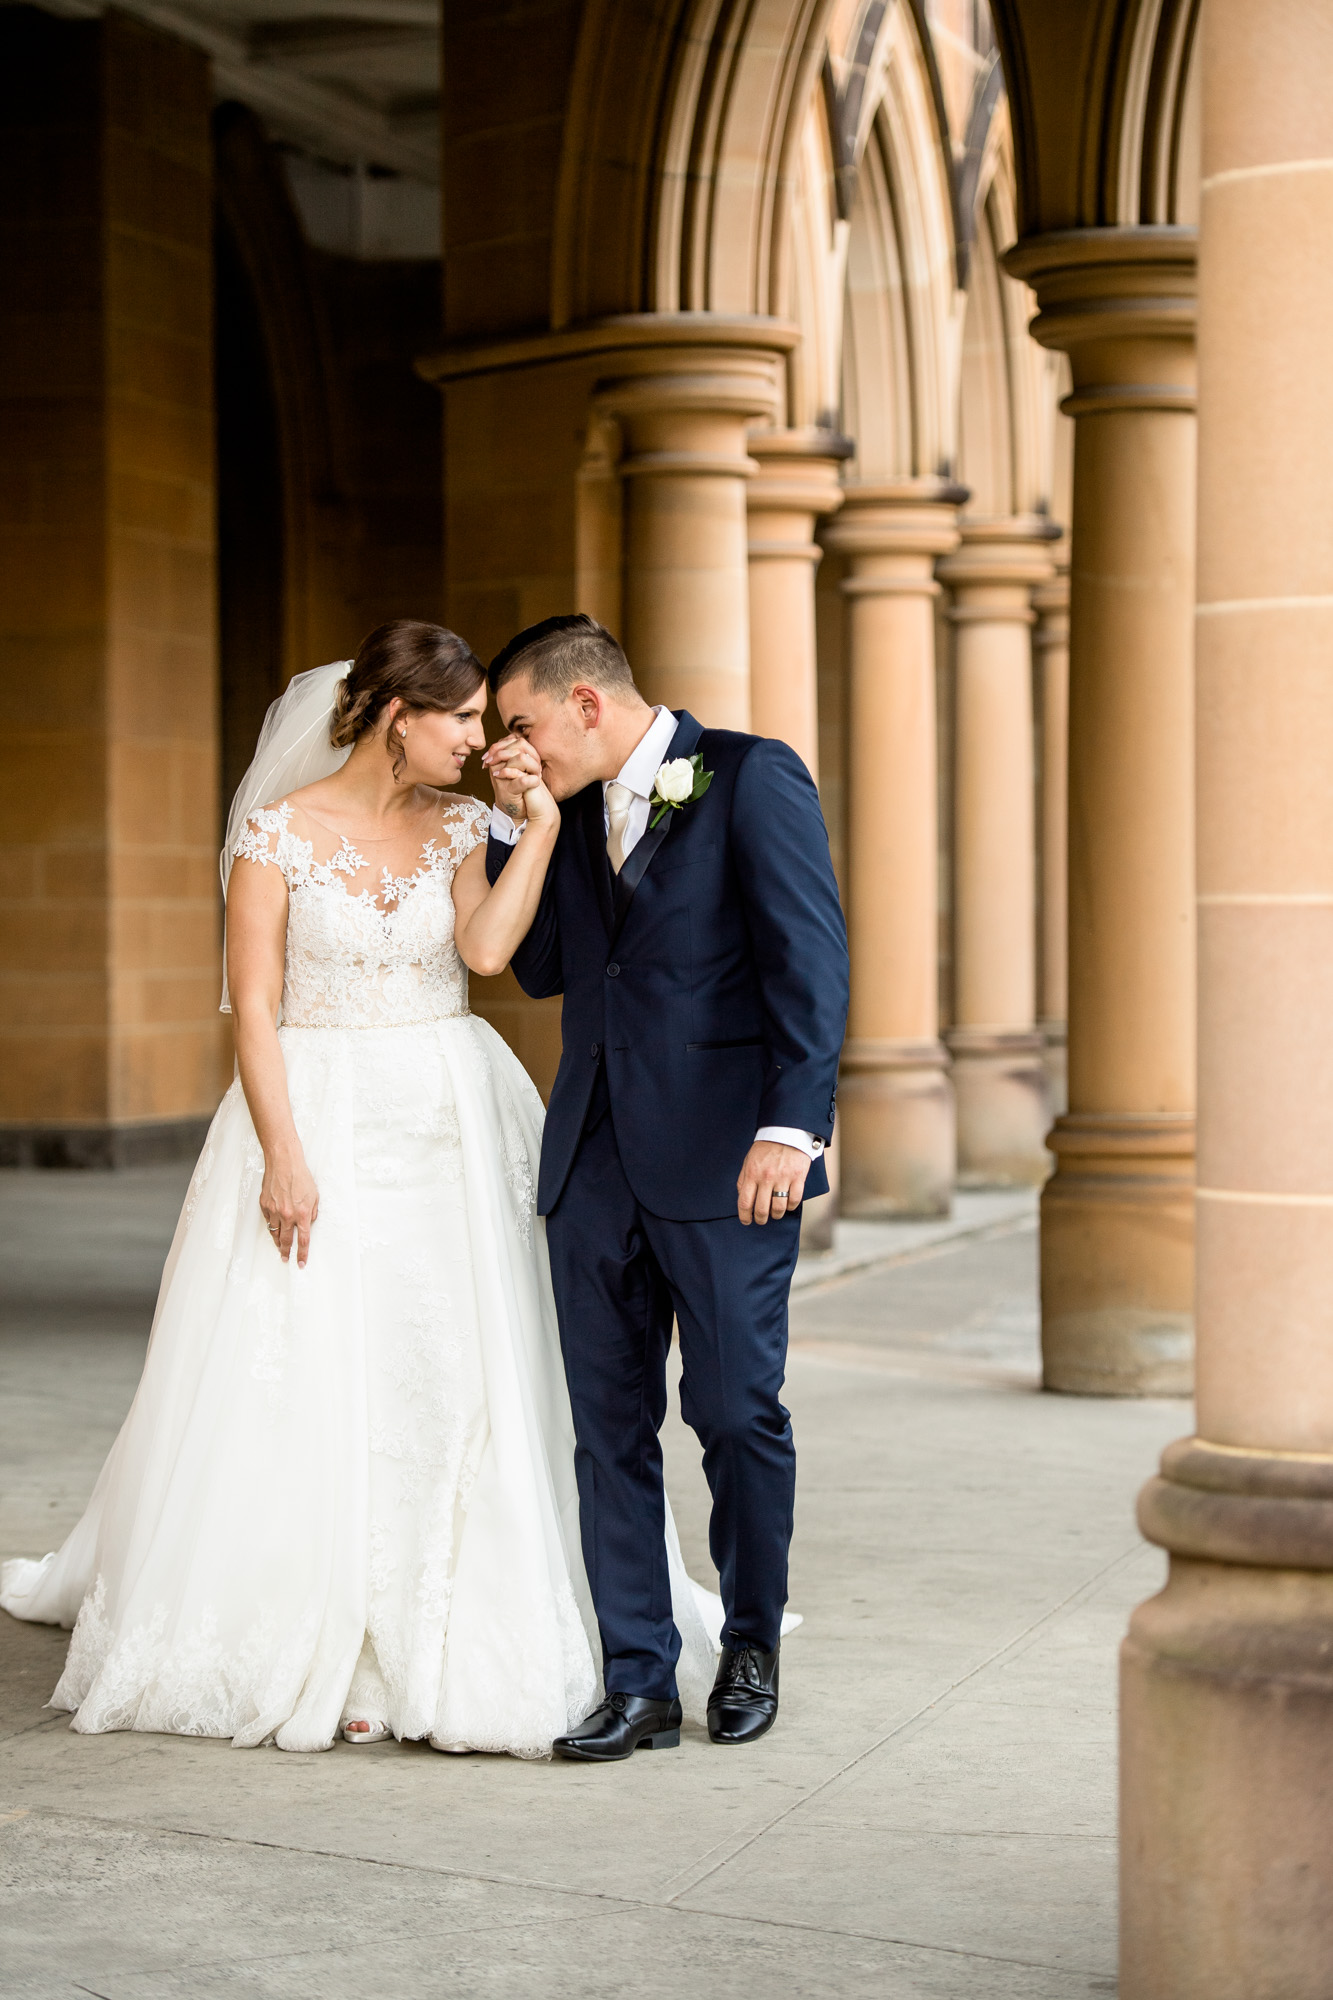 Weddings Mark Jay Photography Sydney Wedding Photography